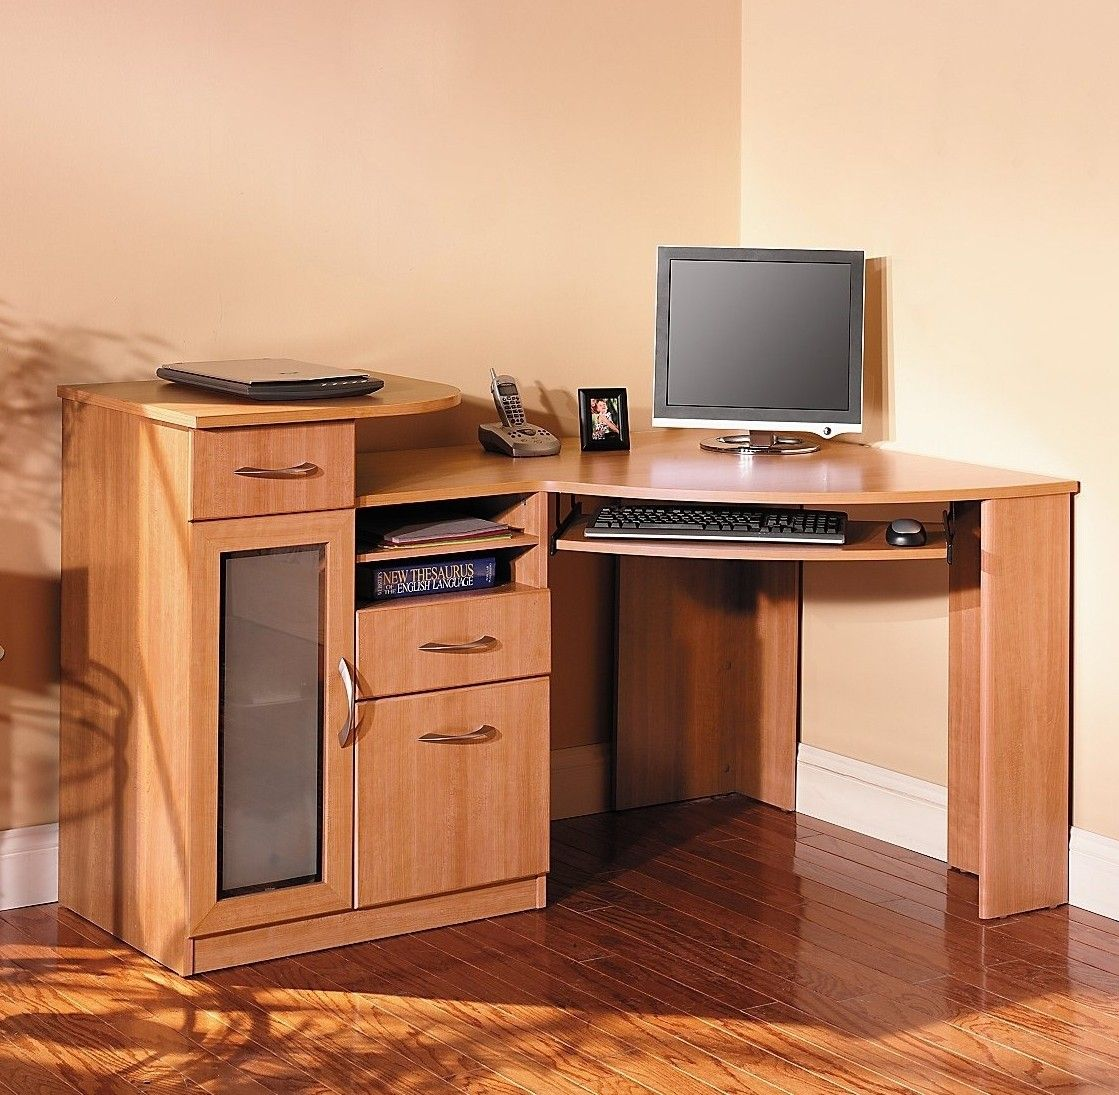 Corner desk is needed in both home and office because it can